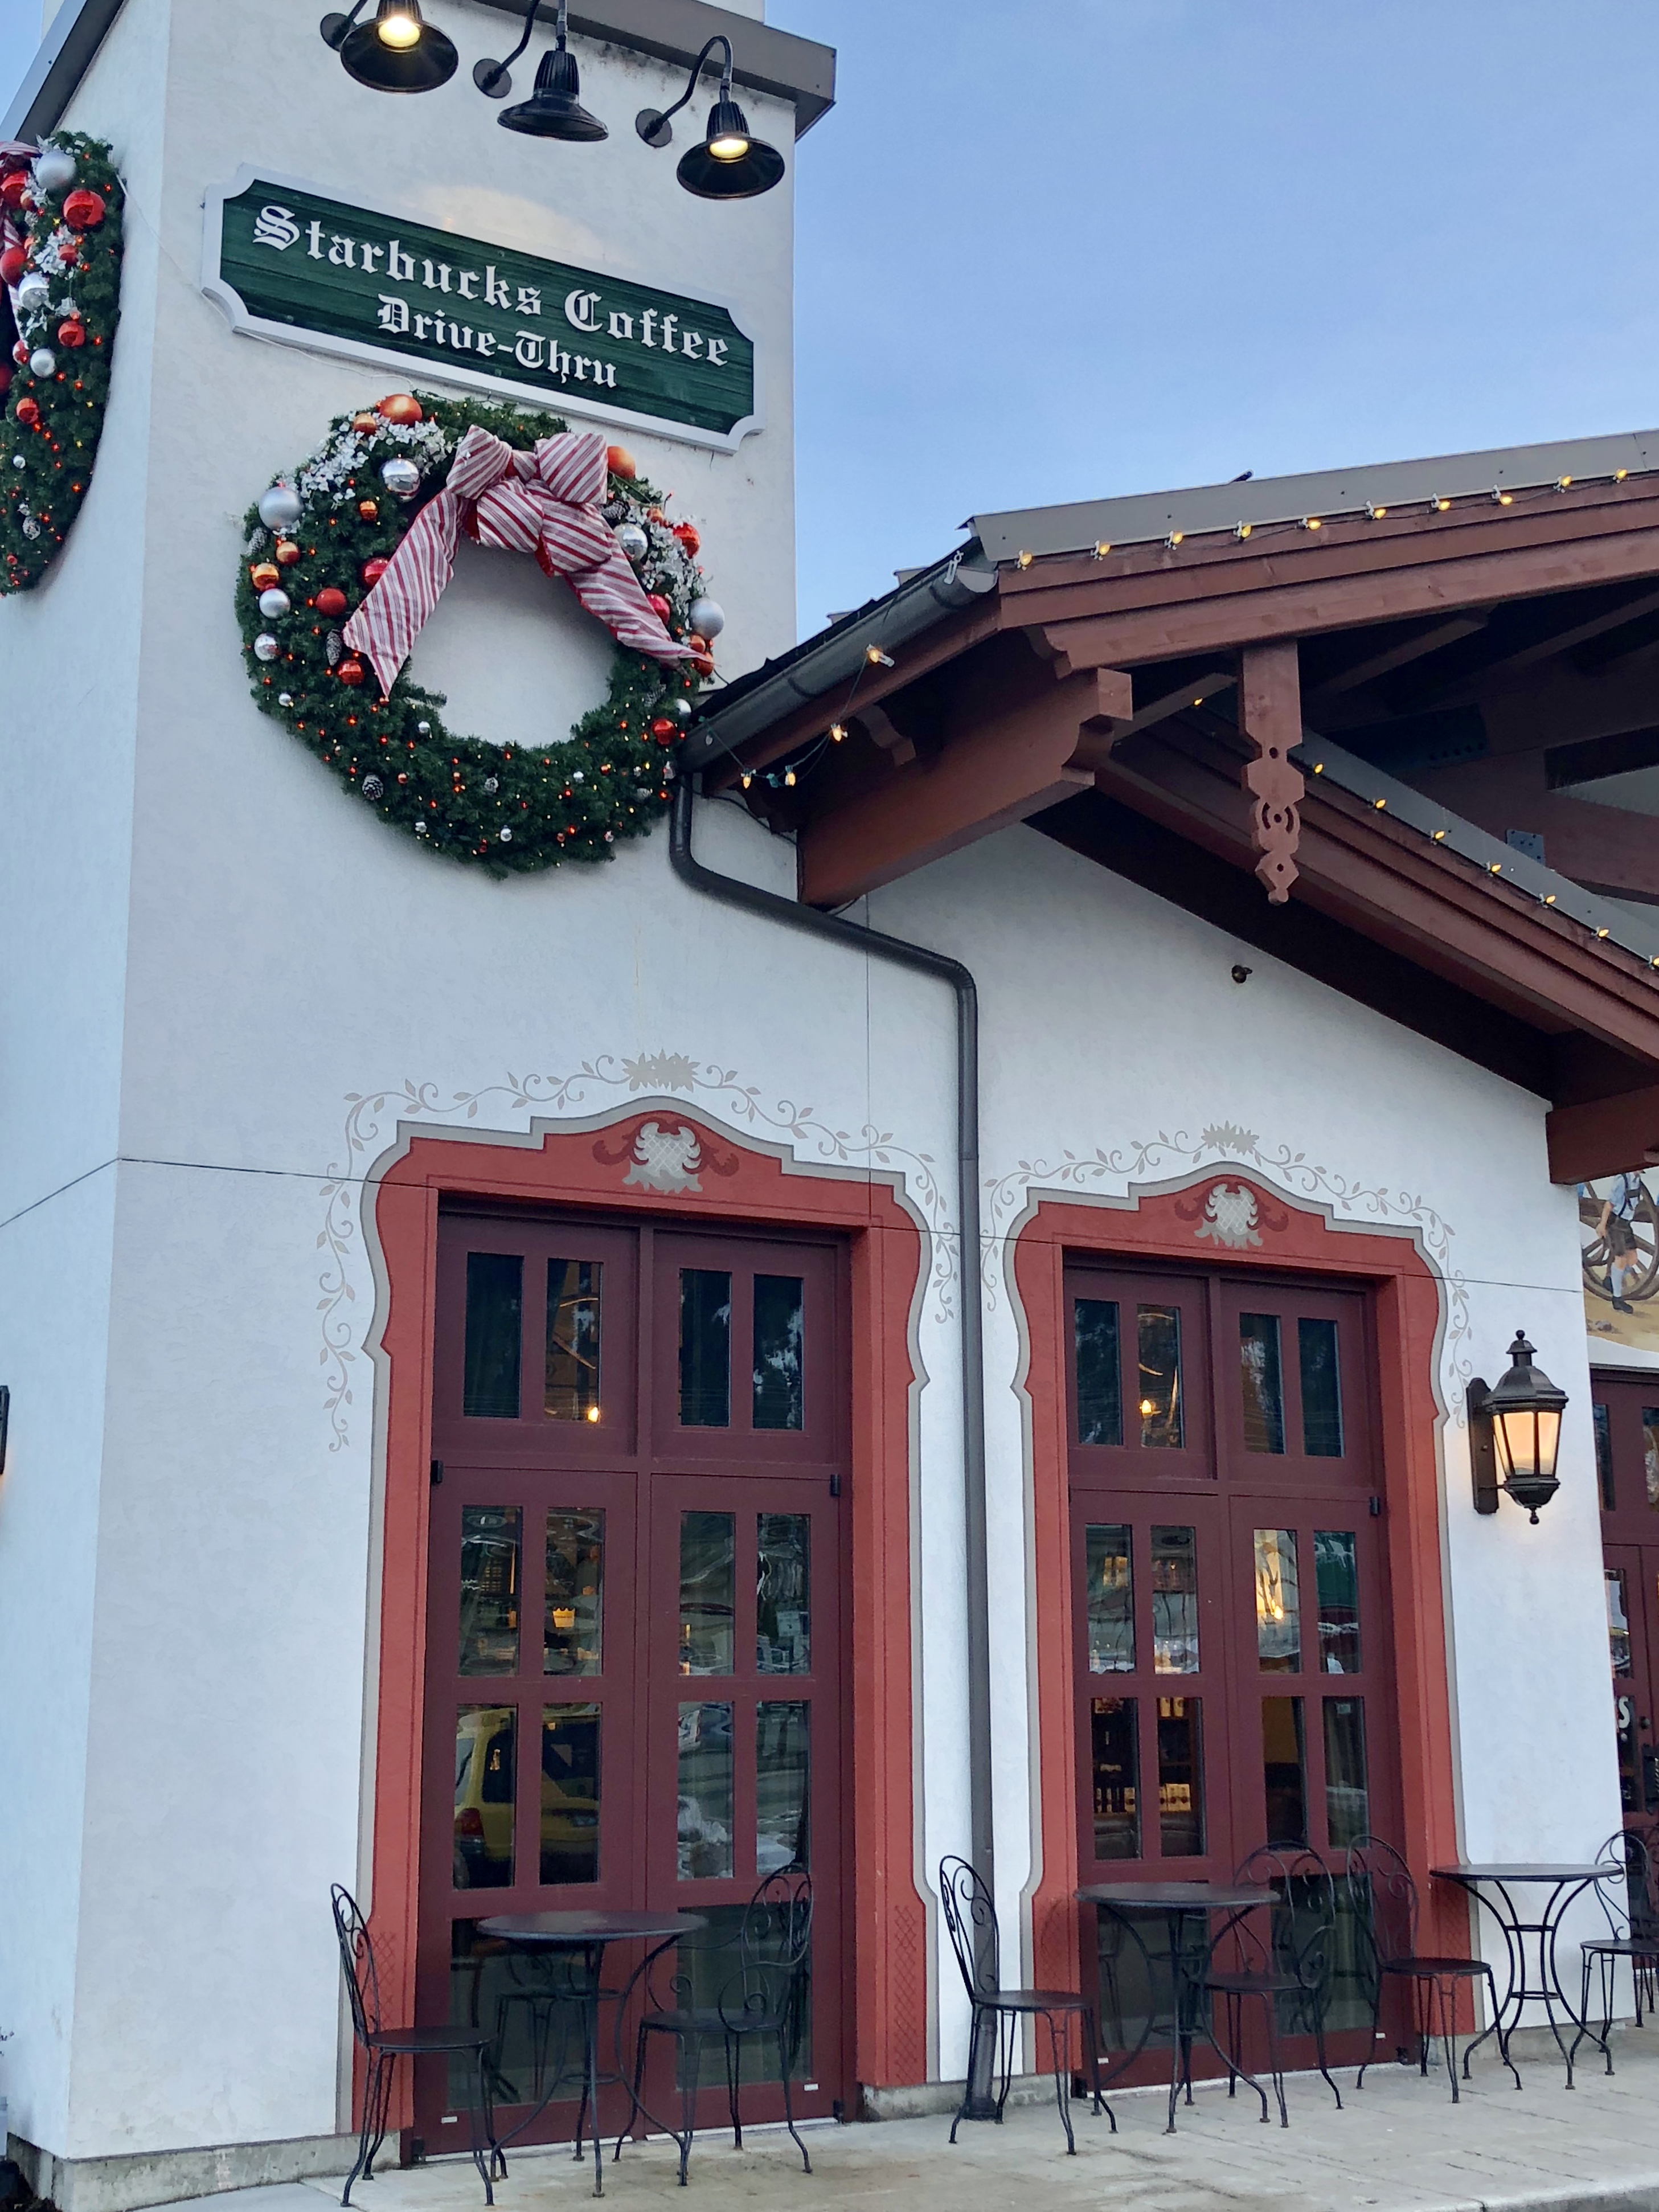 The Starbucks building in downtown Leavenworth. Photo by Rianna Richards, Blogs